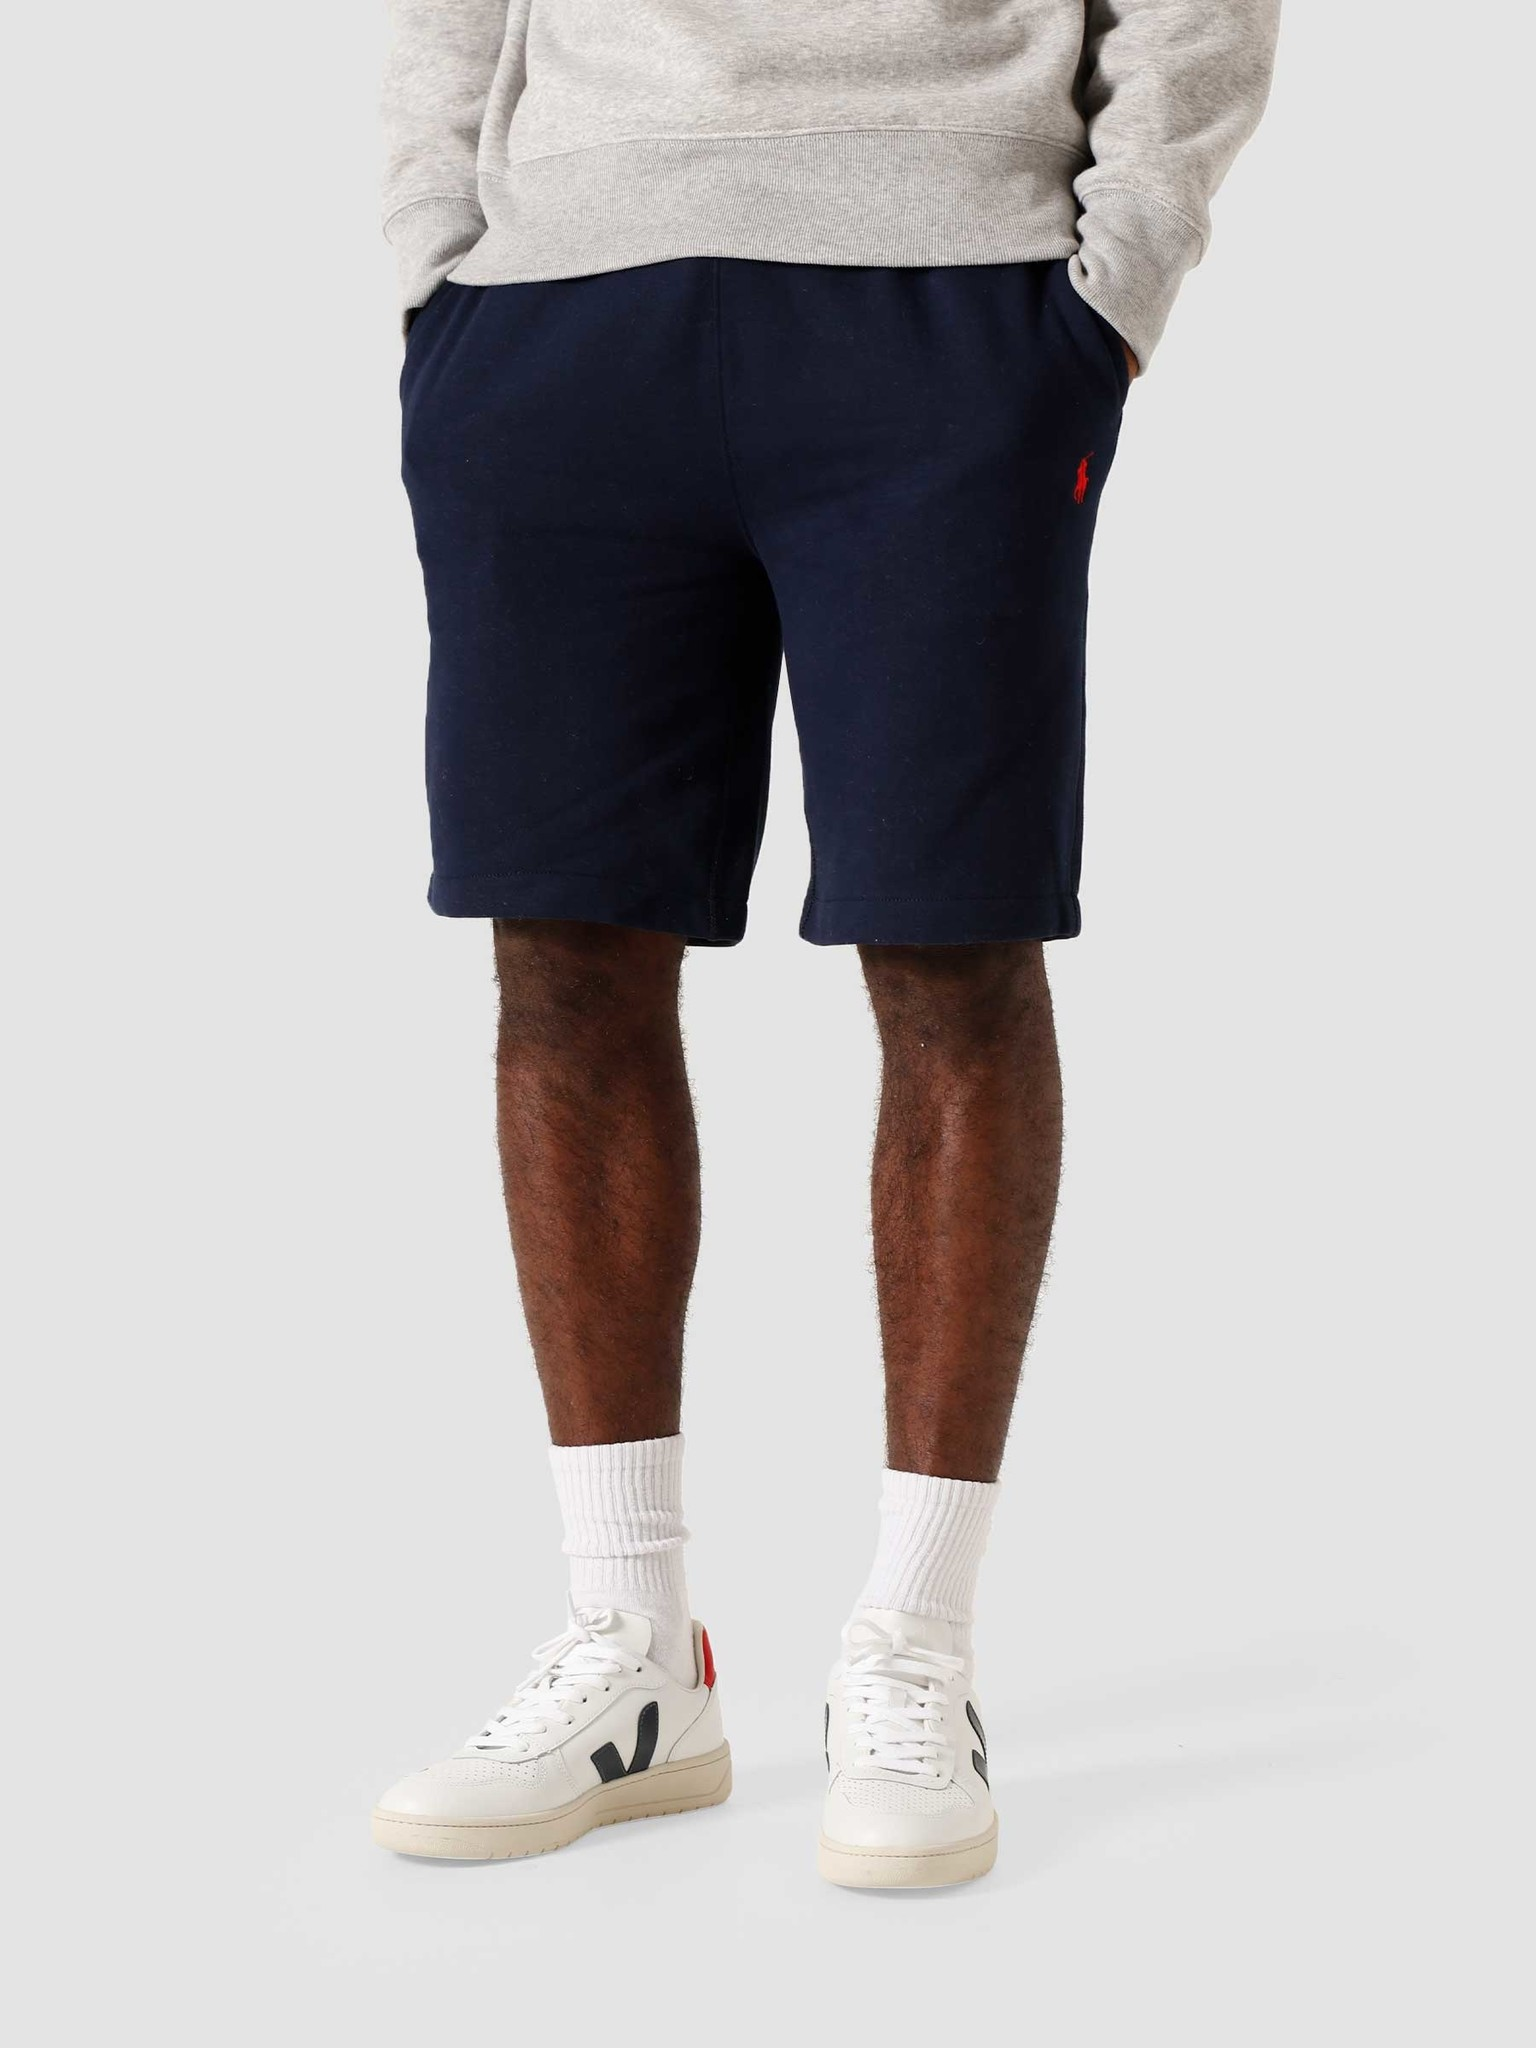 Polo Ralph Lauren Polo Ralph Lauren Athletic Short Cruise Navy 710790292003